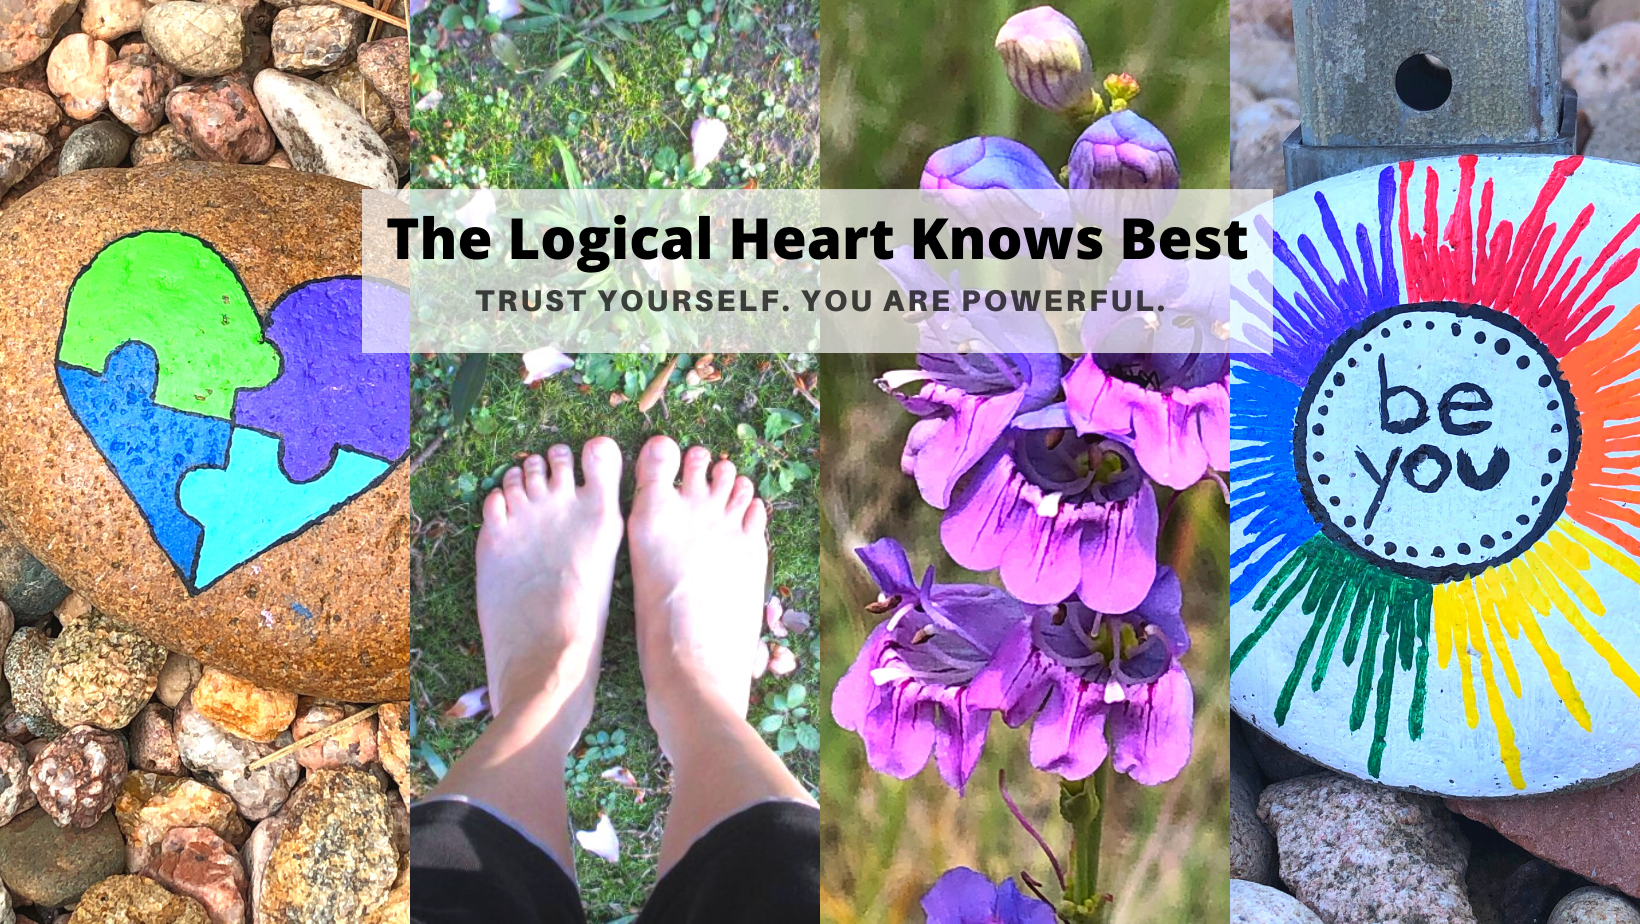 The Logical Heart Knows Best